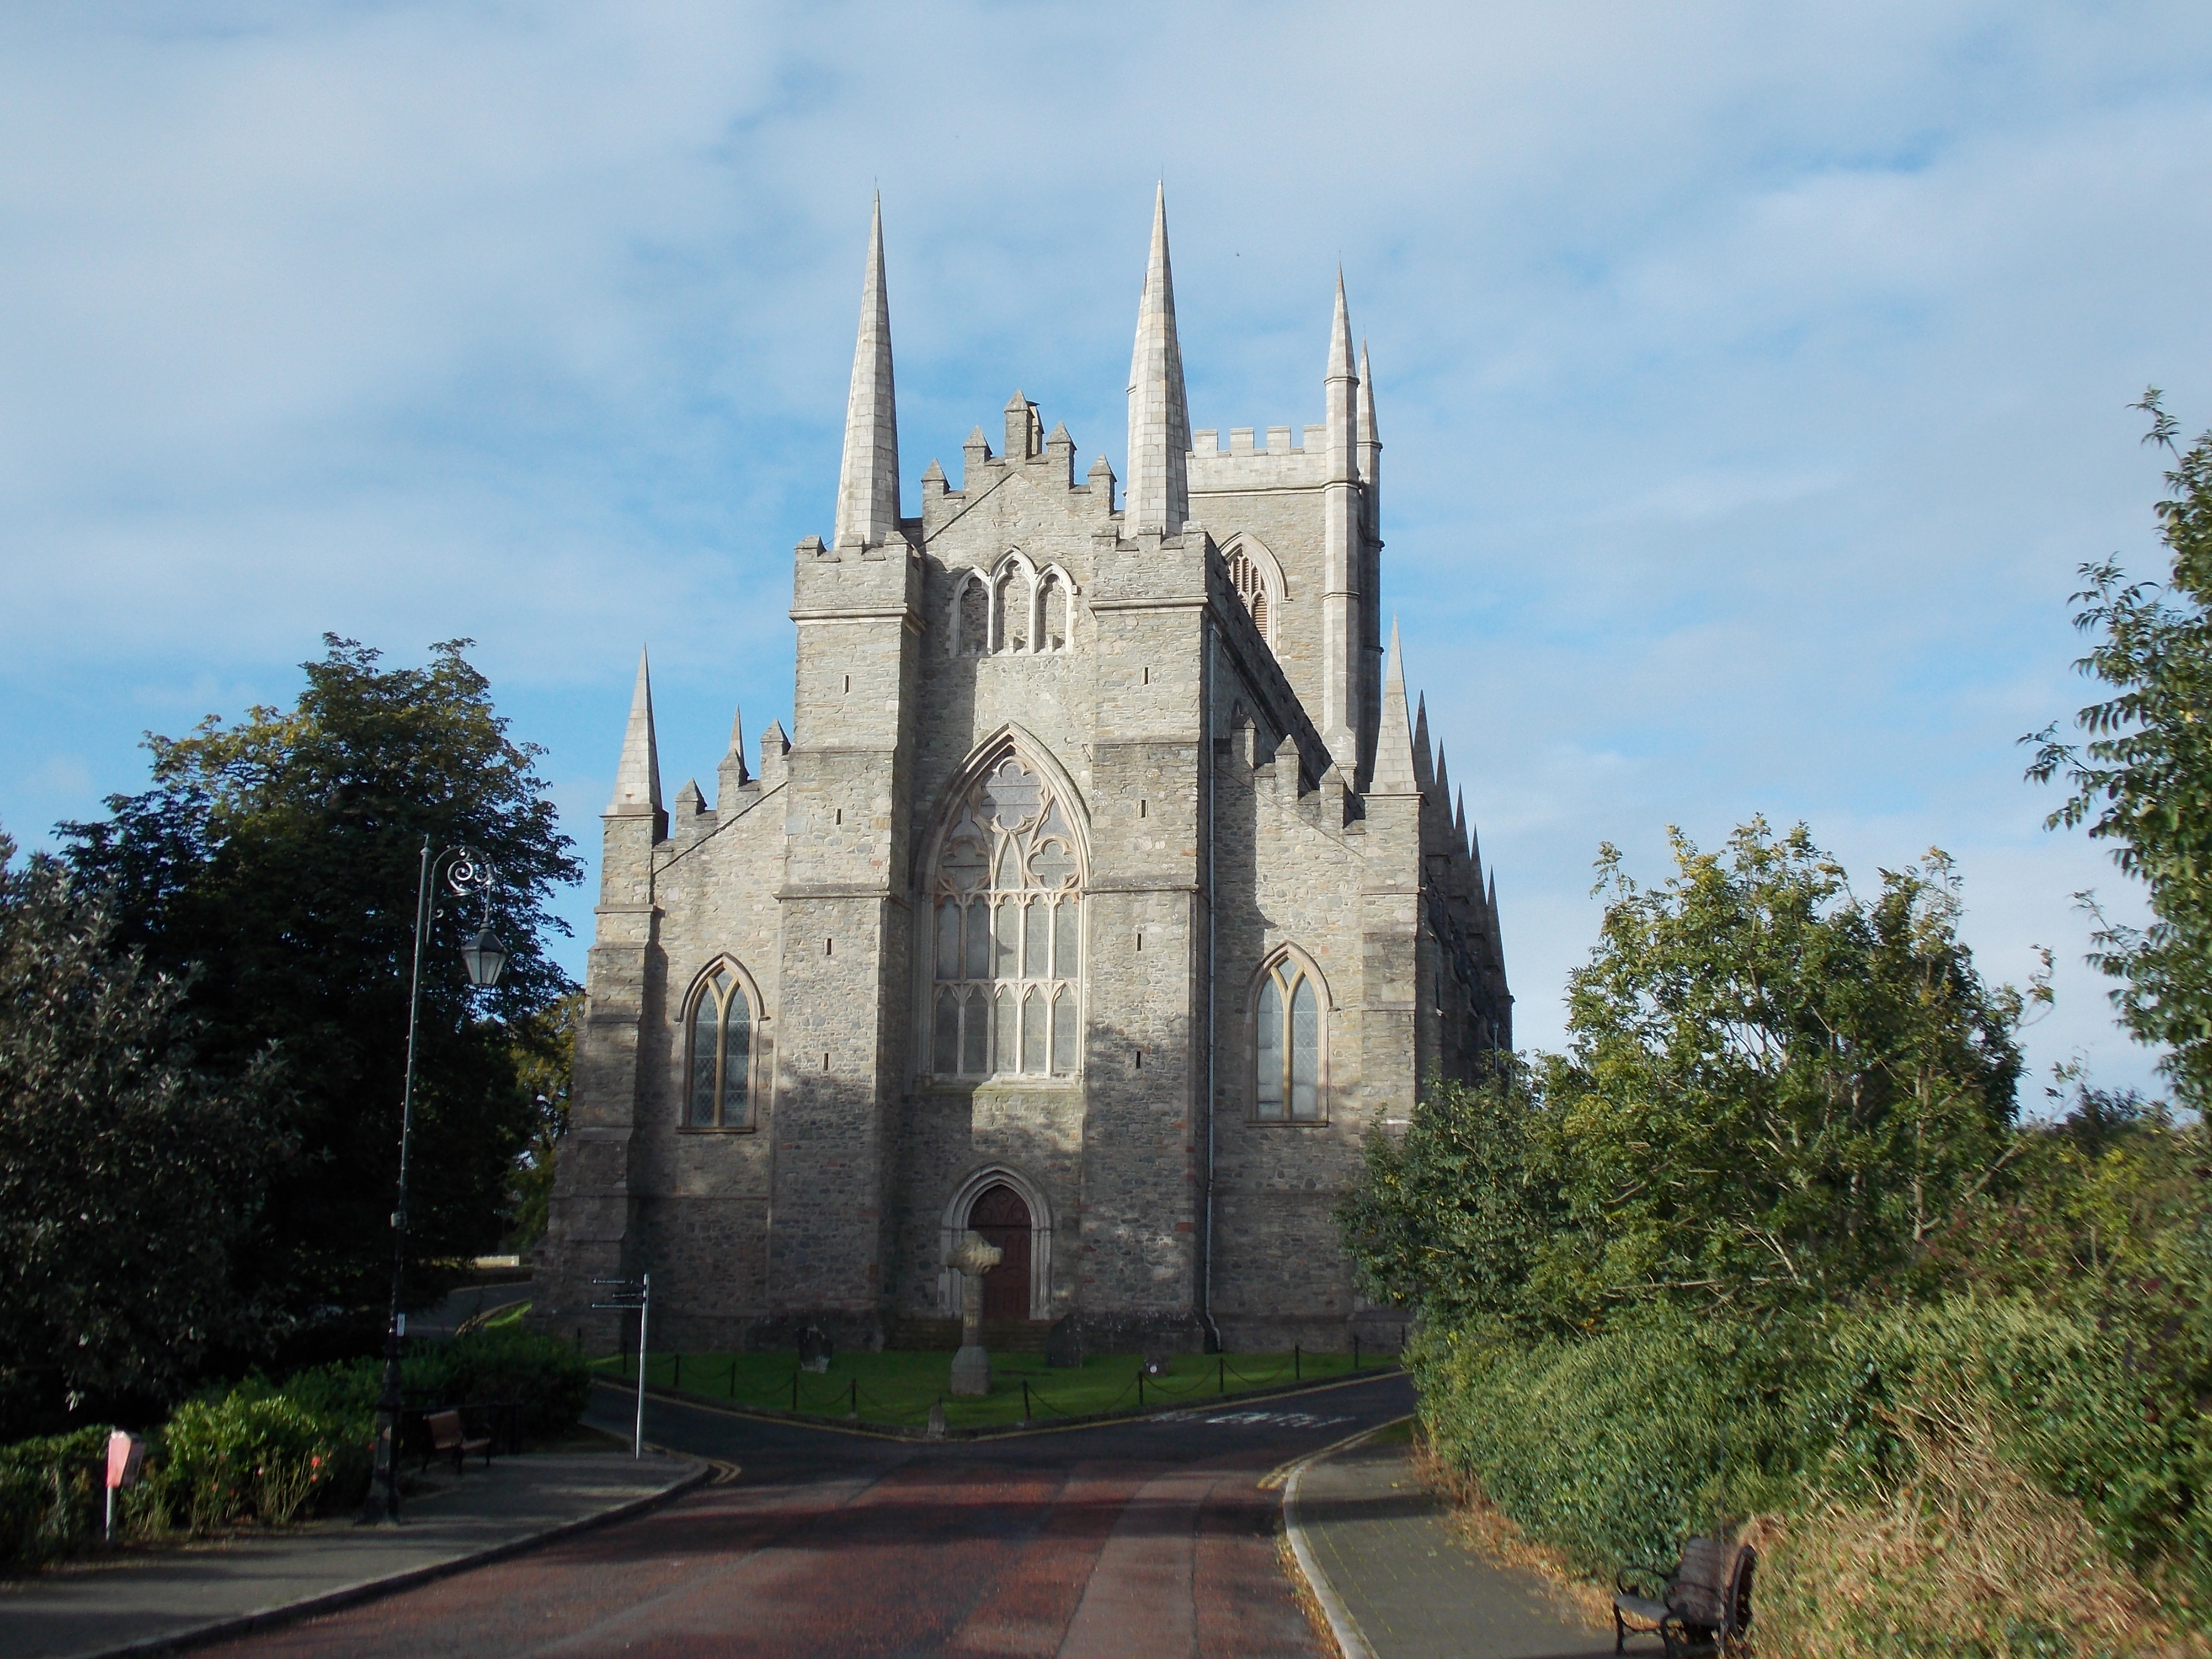 Down Cathedral Ireland File:down Cathedral Rear View